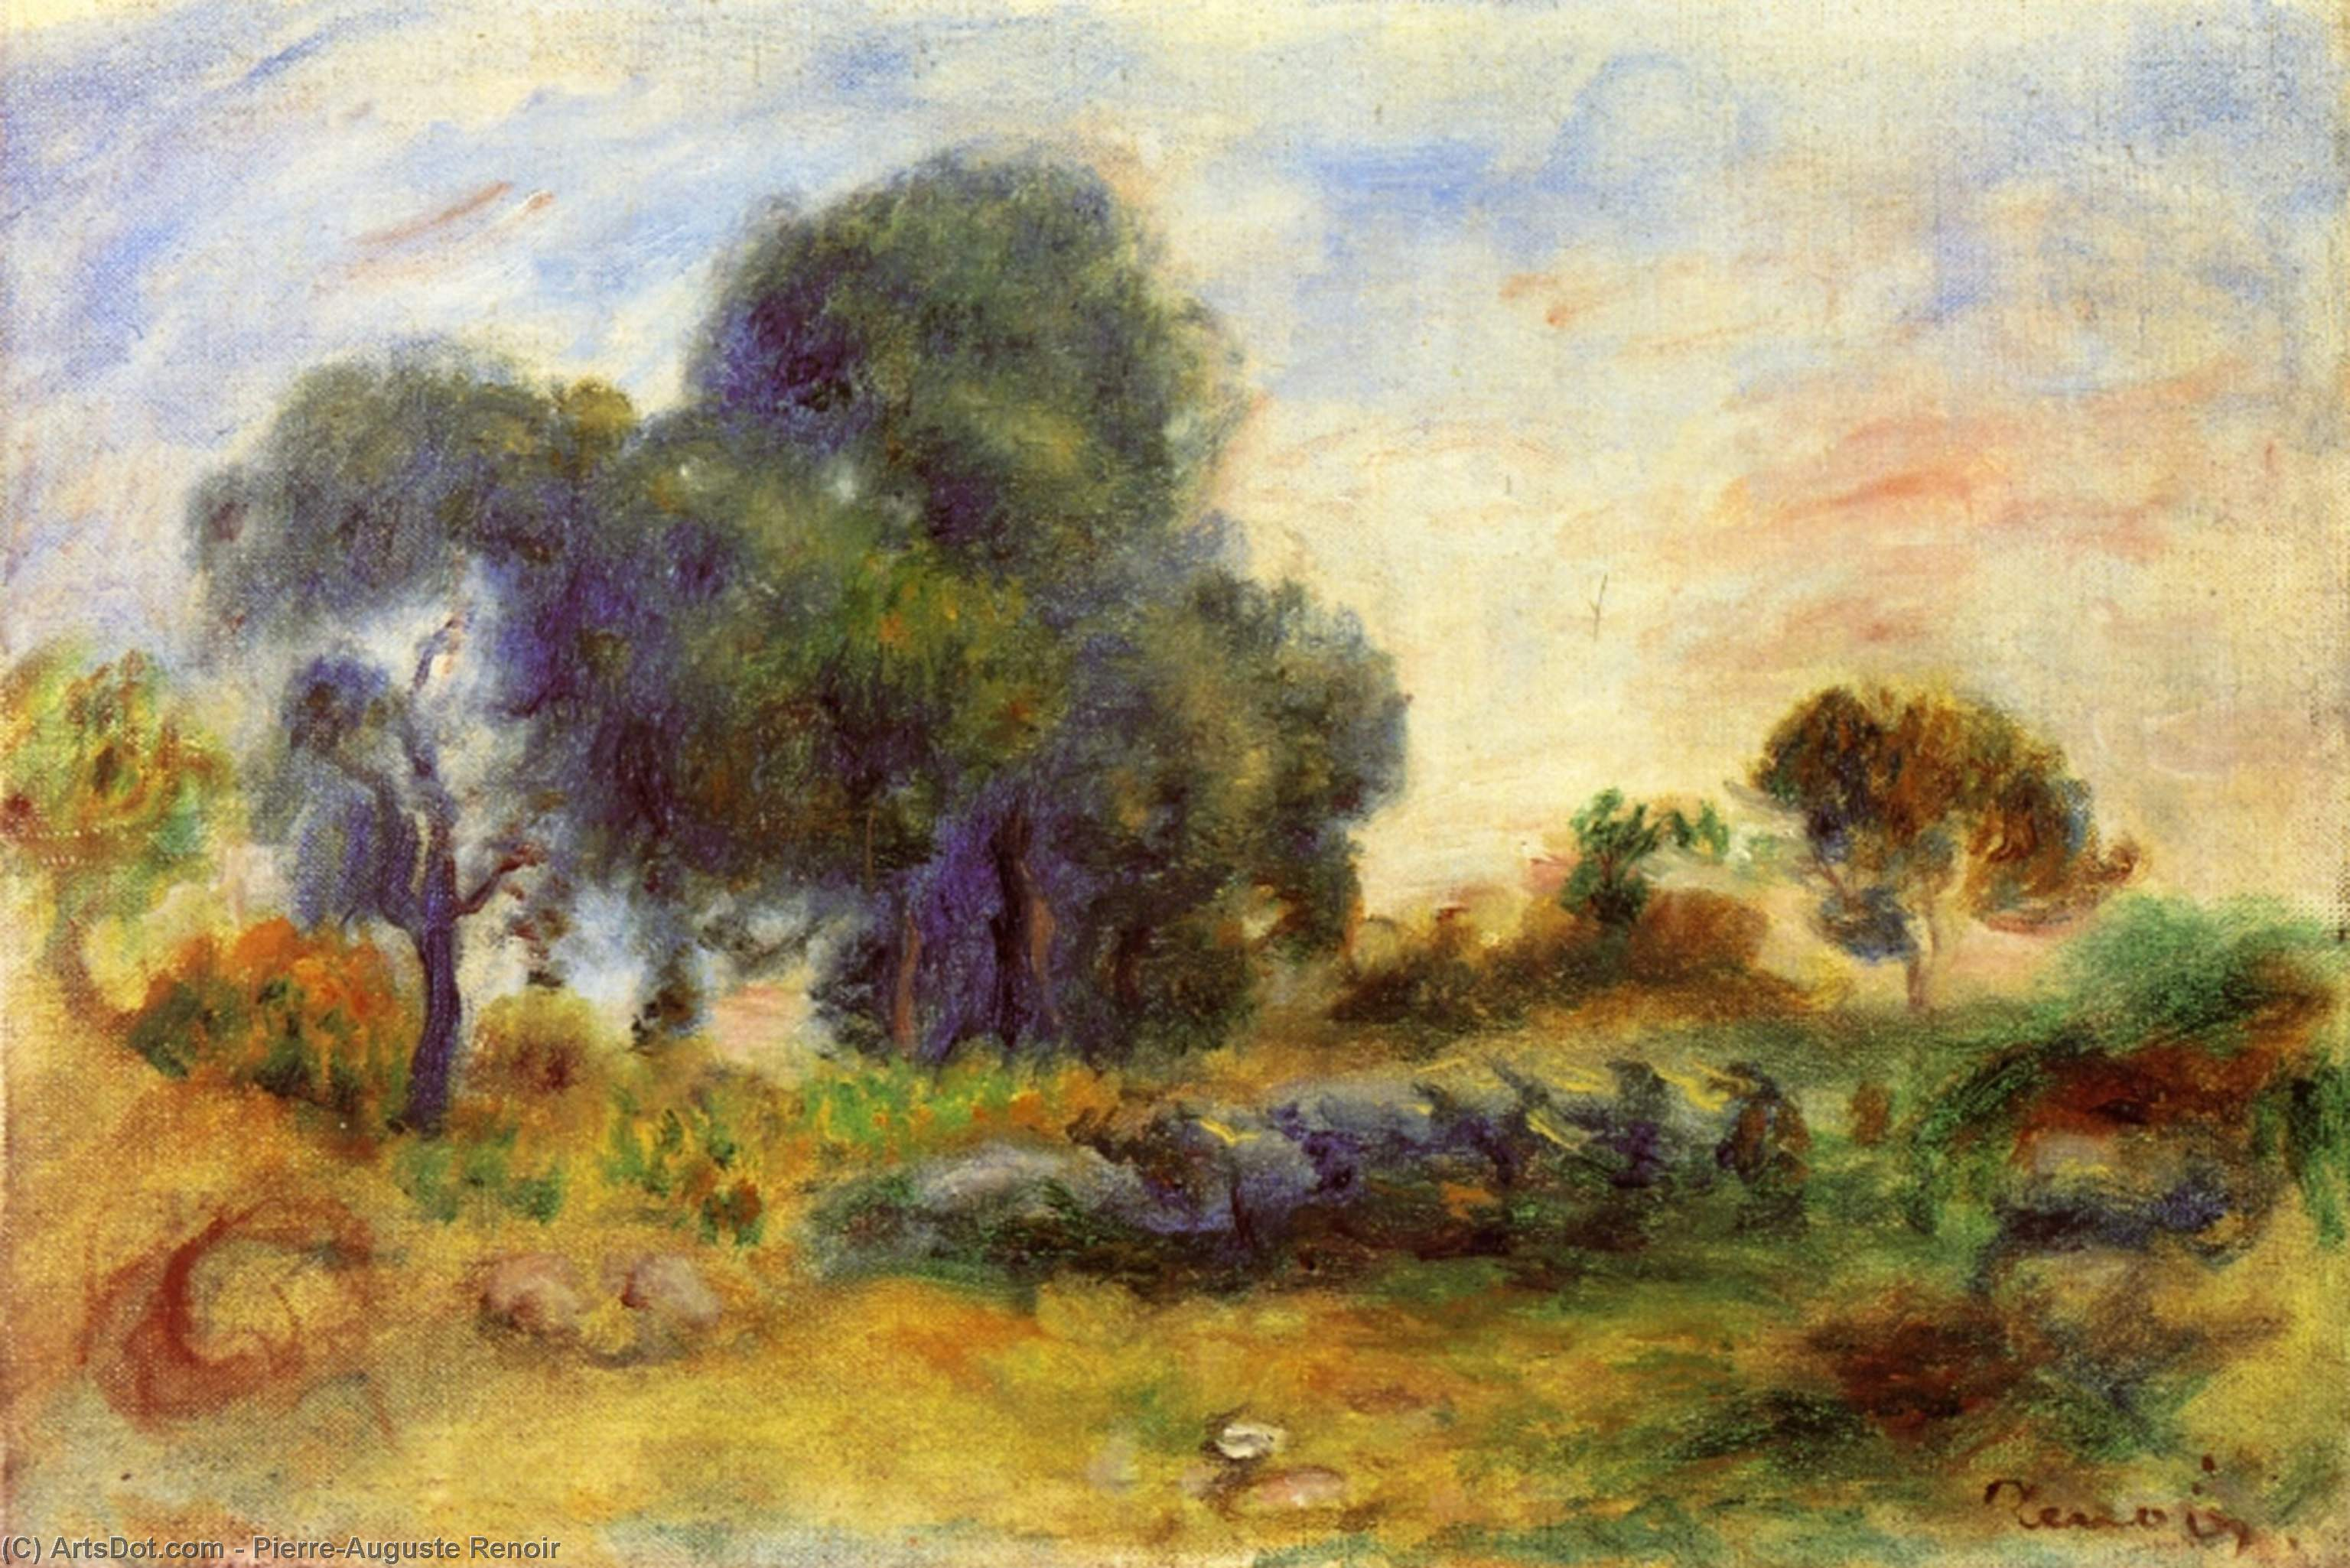 Wikioo.org - The Encyclopedia of Fine Arts - Painting, Artwork by Pierre-Auguste Renoir - Landscape 3